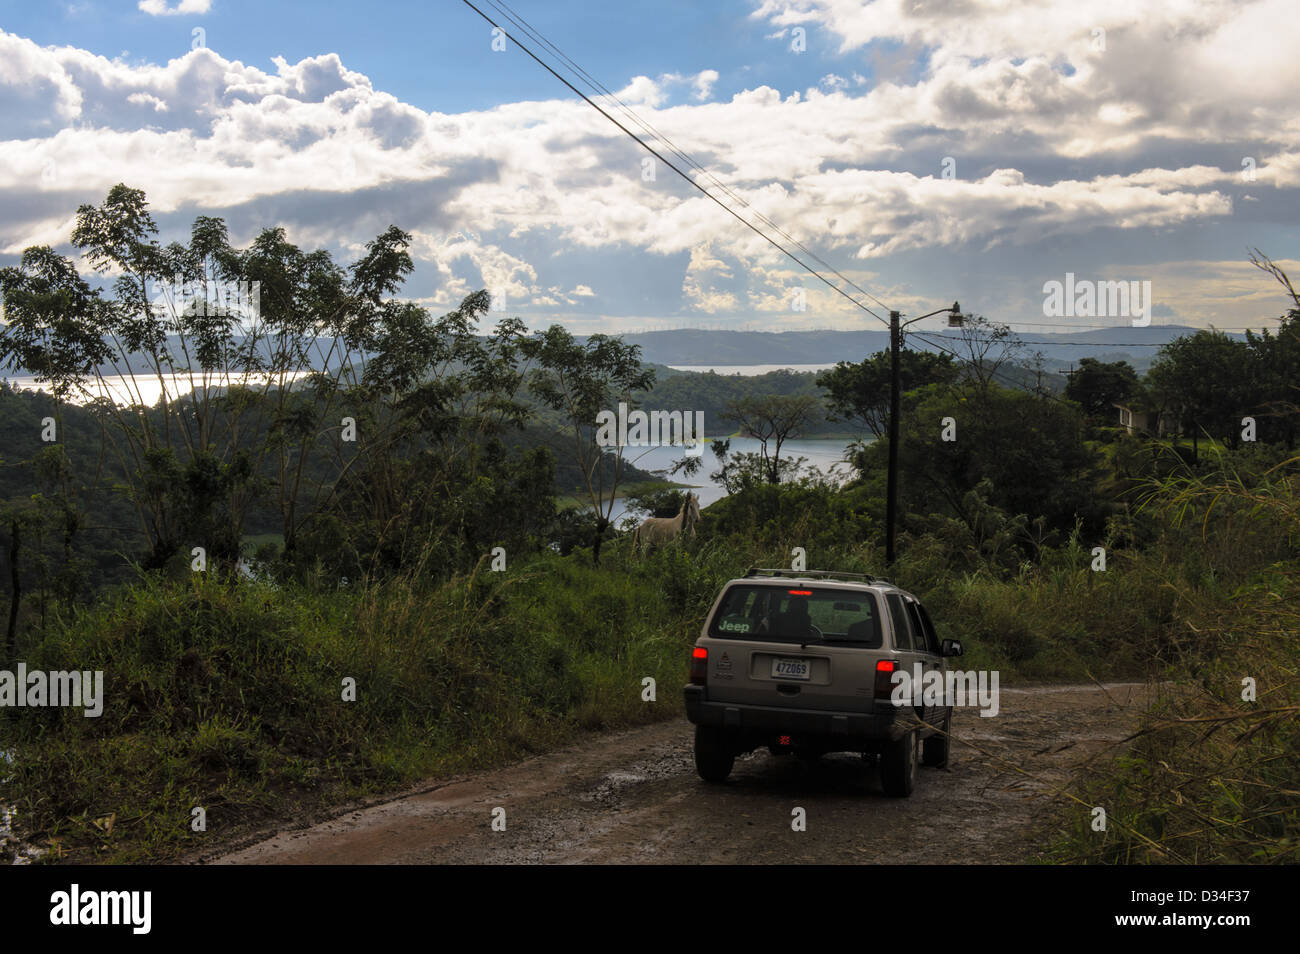 Jeep slowing down on a dirt road leading to Lake Arenal near the village Nuevo Arenal Costa Rica - Stock Image